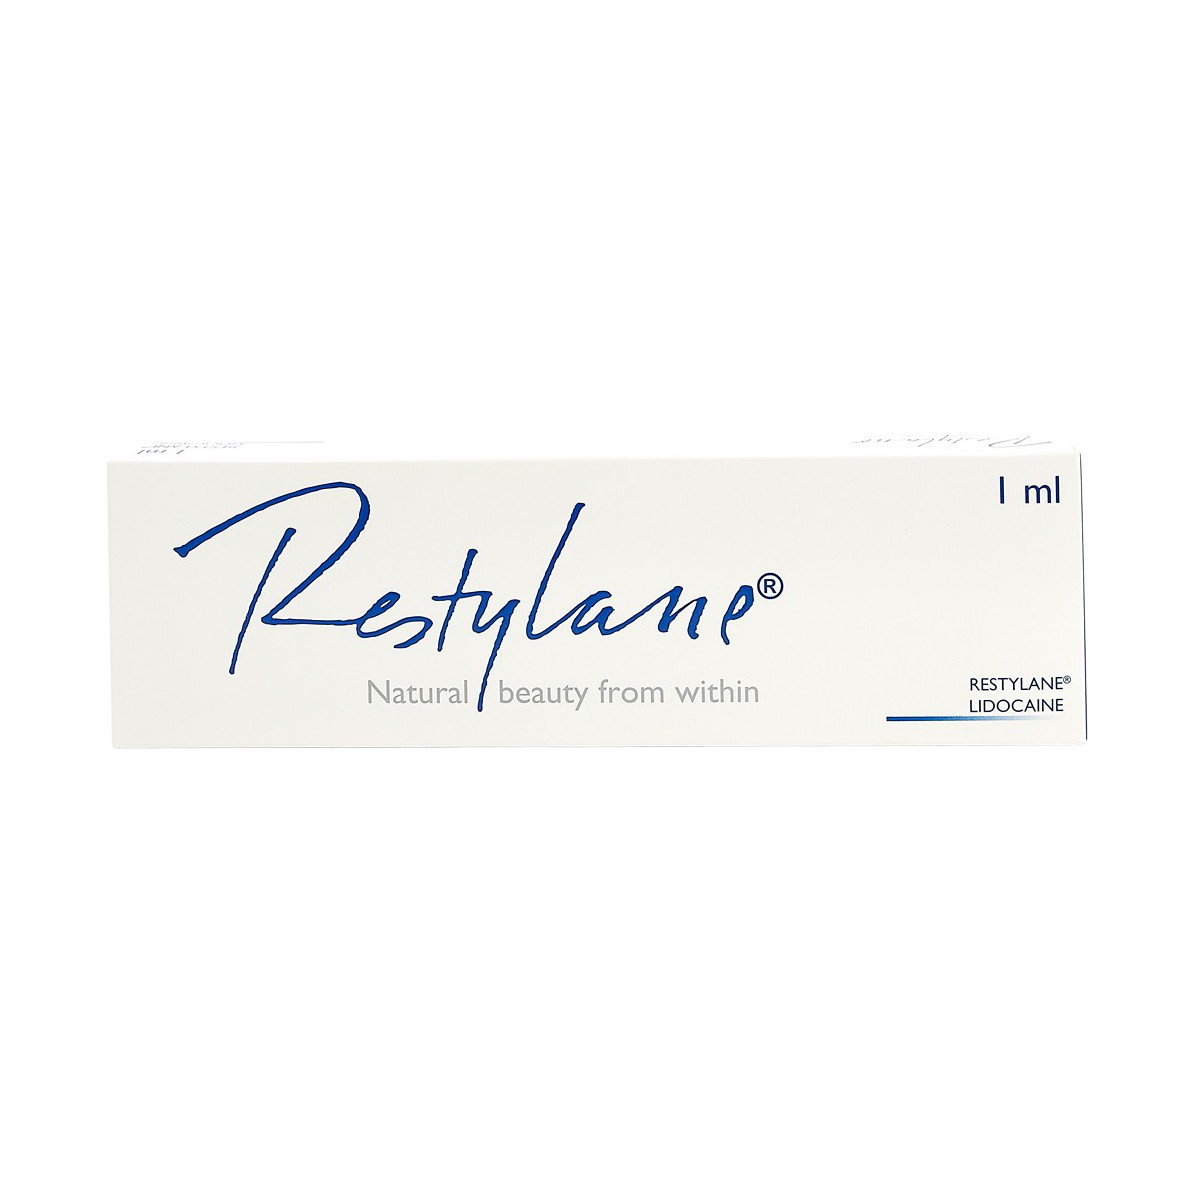 Buy Restylane with Lidocaine for $149! Restylane Injections Online at MedicaOutlet.com